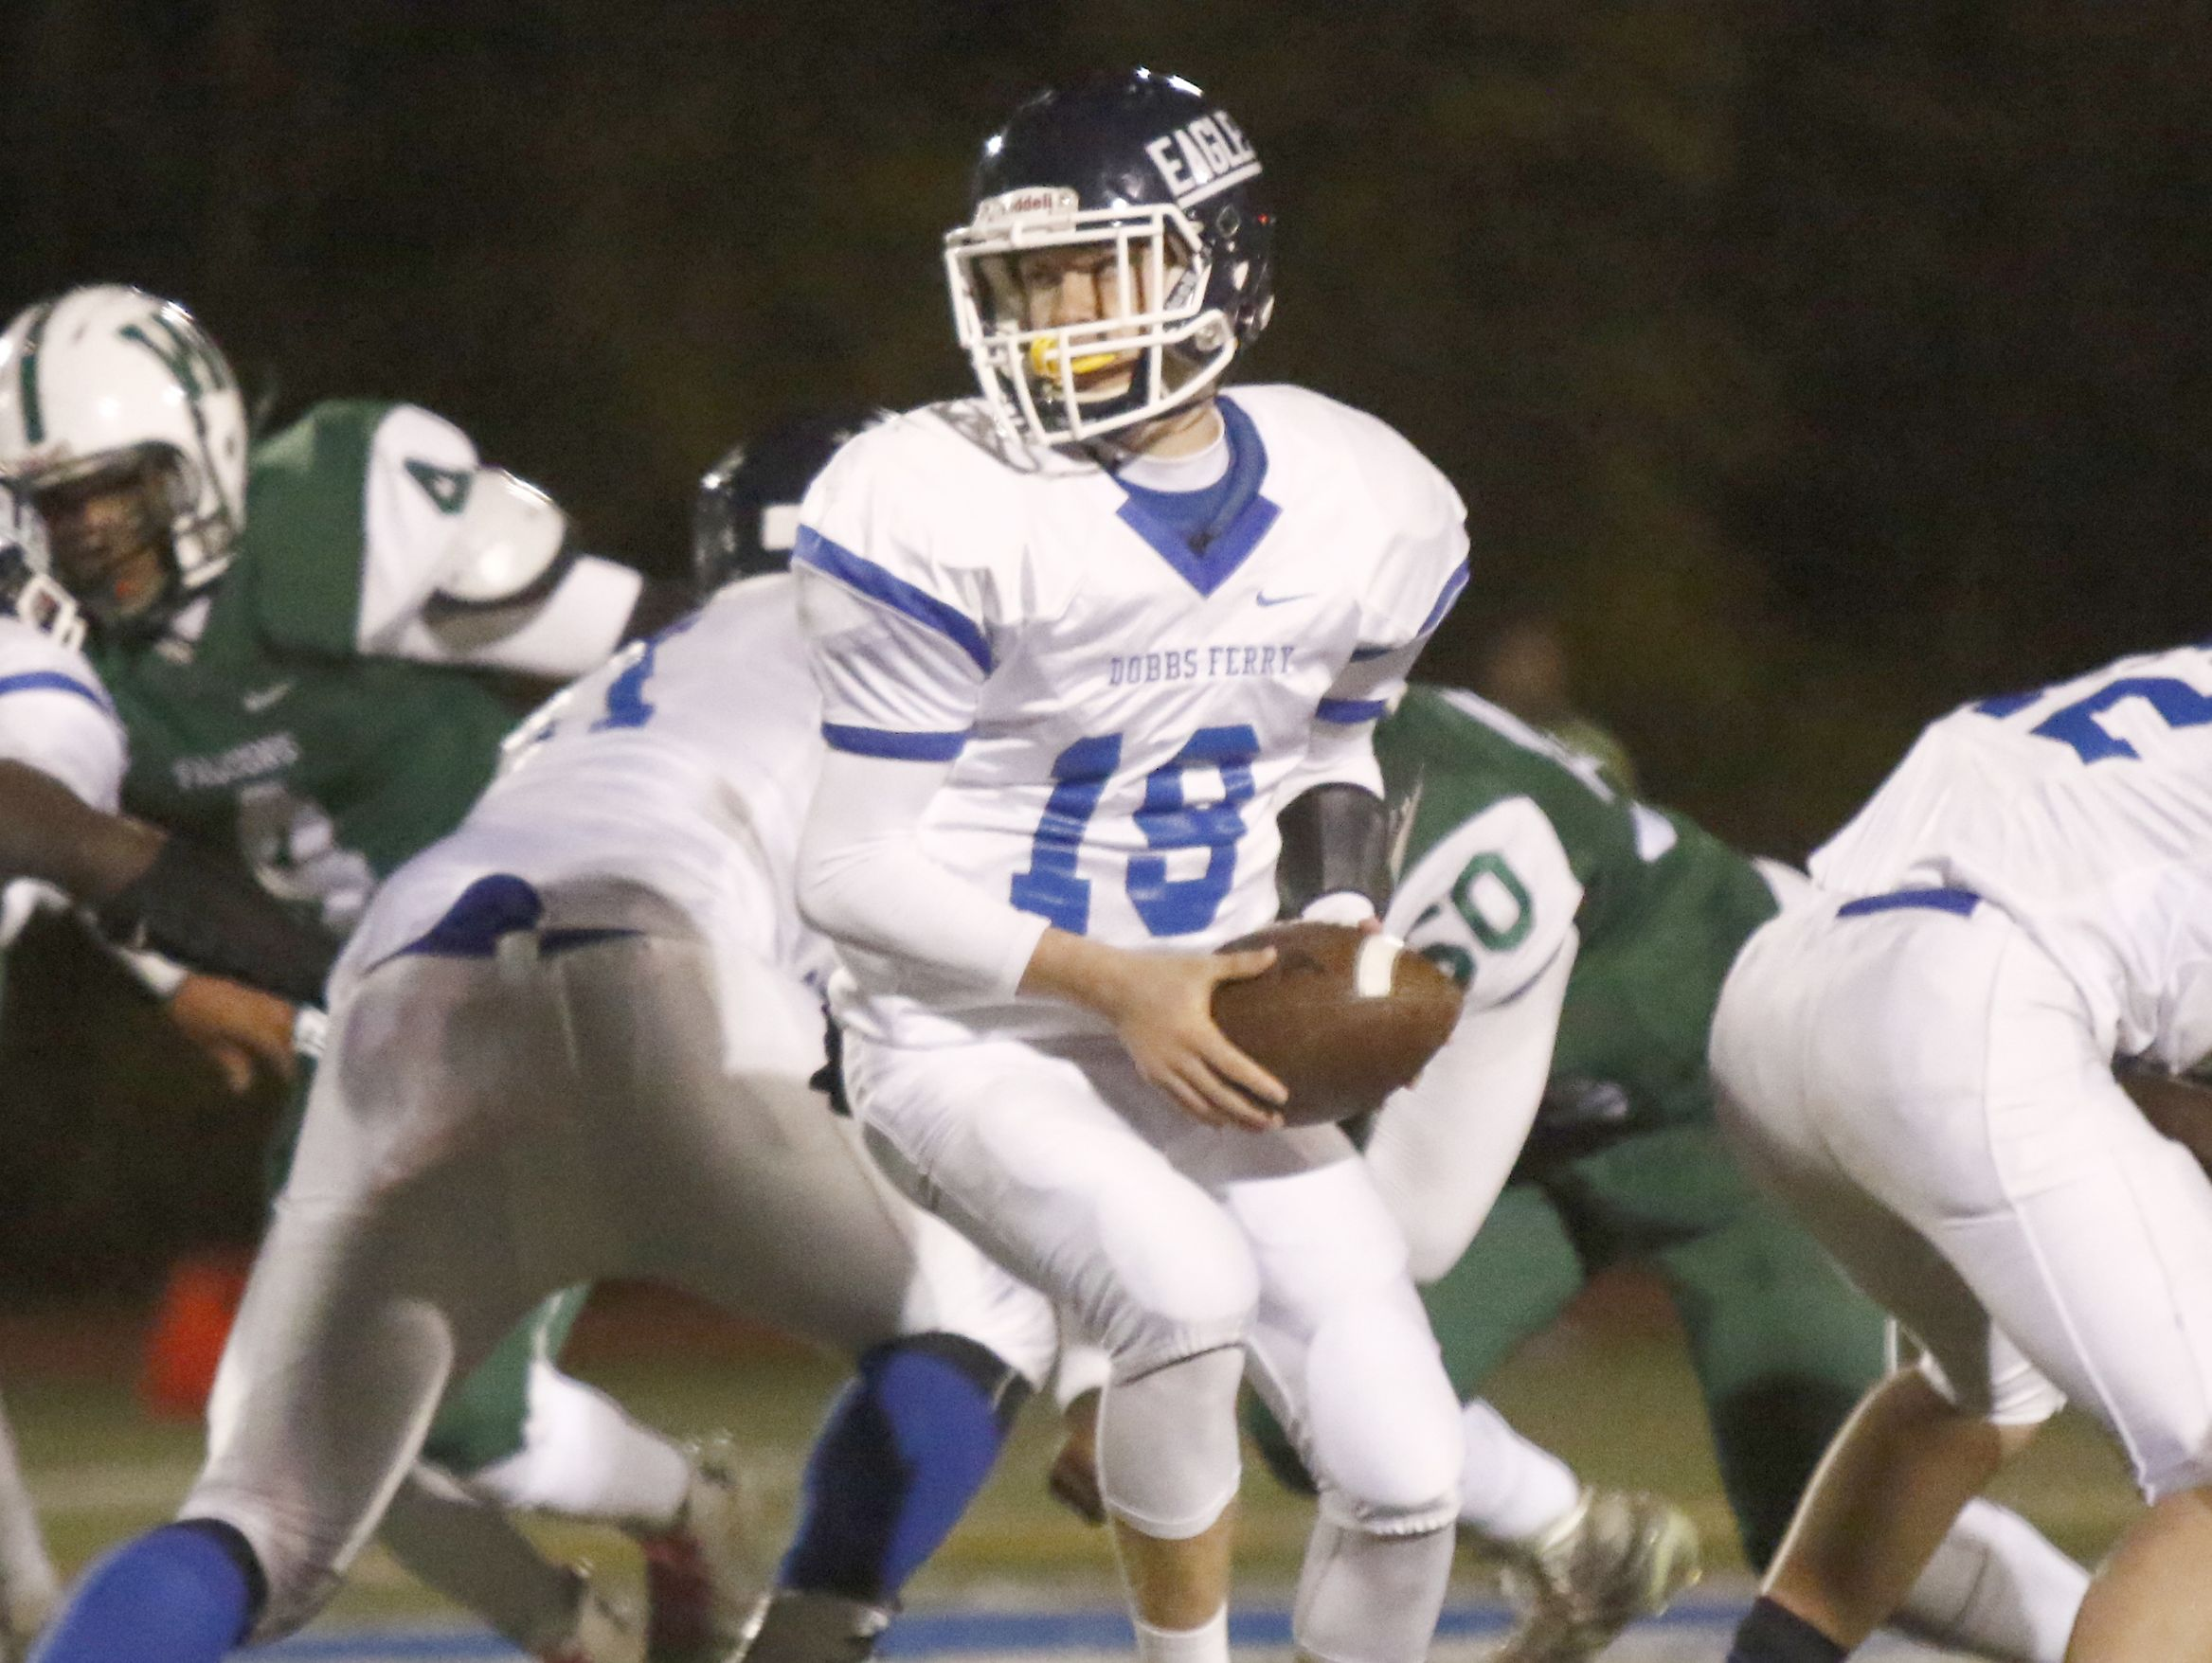 Dobbs Ferry quarterback Patrick Straub turns for a handoff during the Eagles' 21-14 win over Woodlands in the Section 1 Class C championship game at Mahopac High School on Friday.